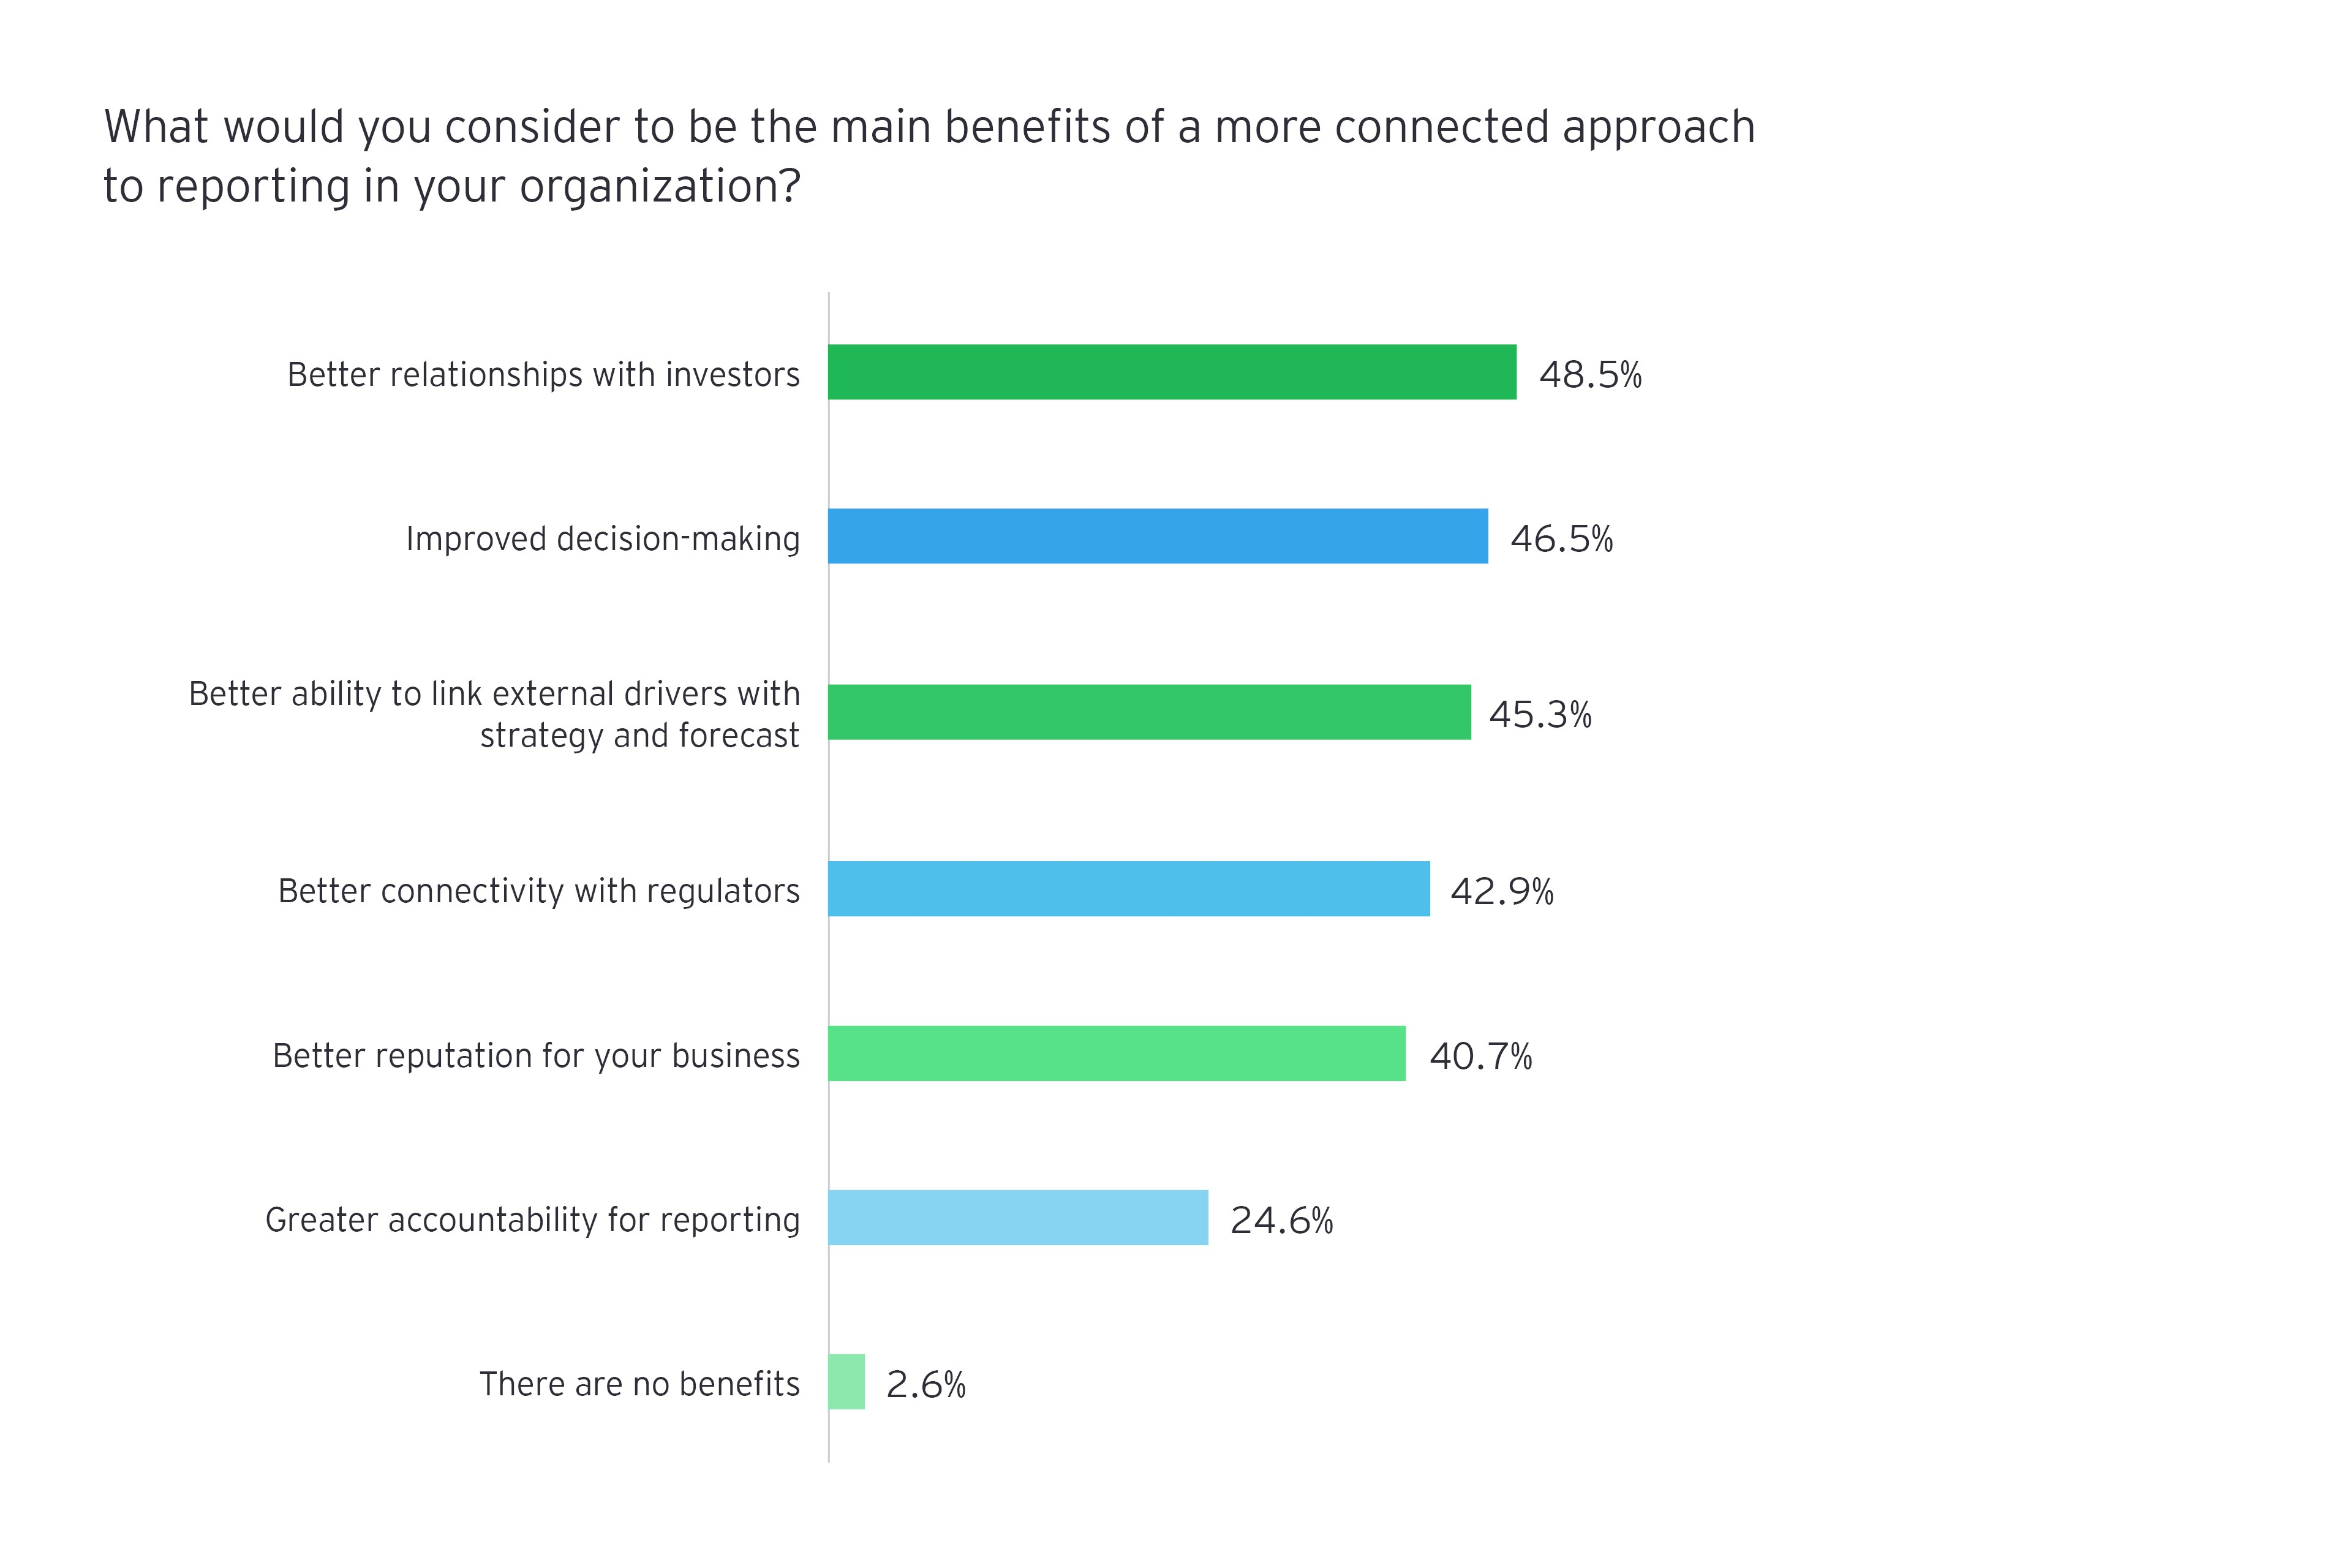 What would you consider to be the main benefits of a more connected approach to reporting in your organization?